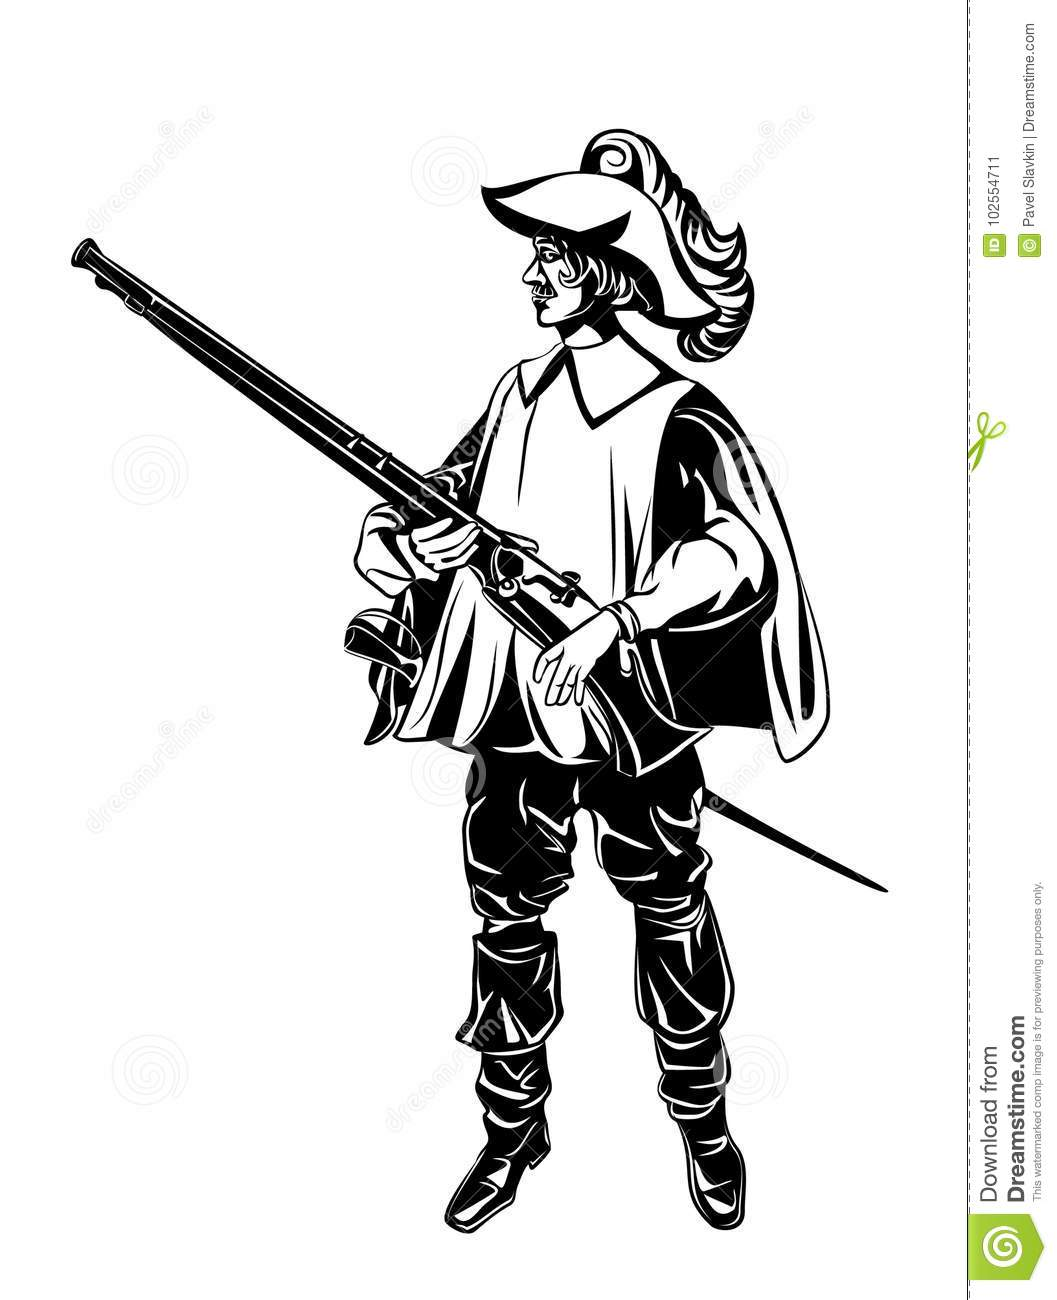 Silhouette Of An Armed Musketeer Stock Vector